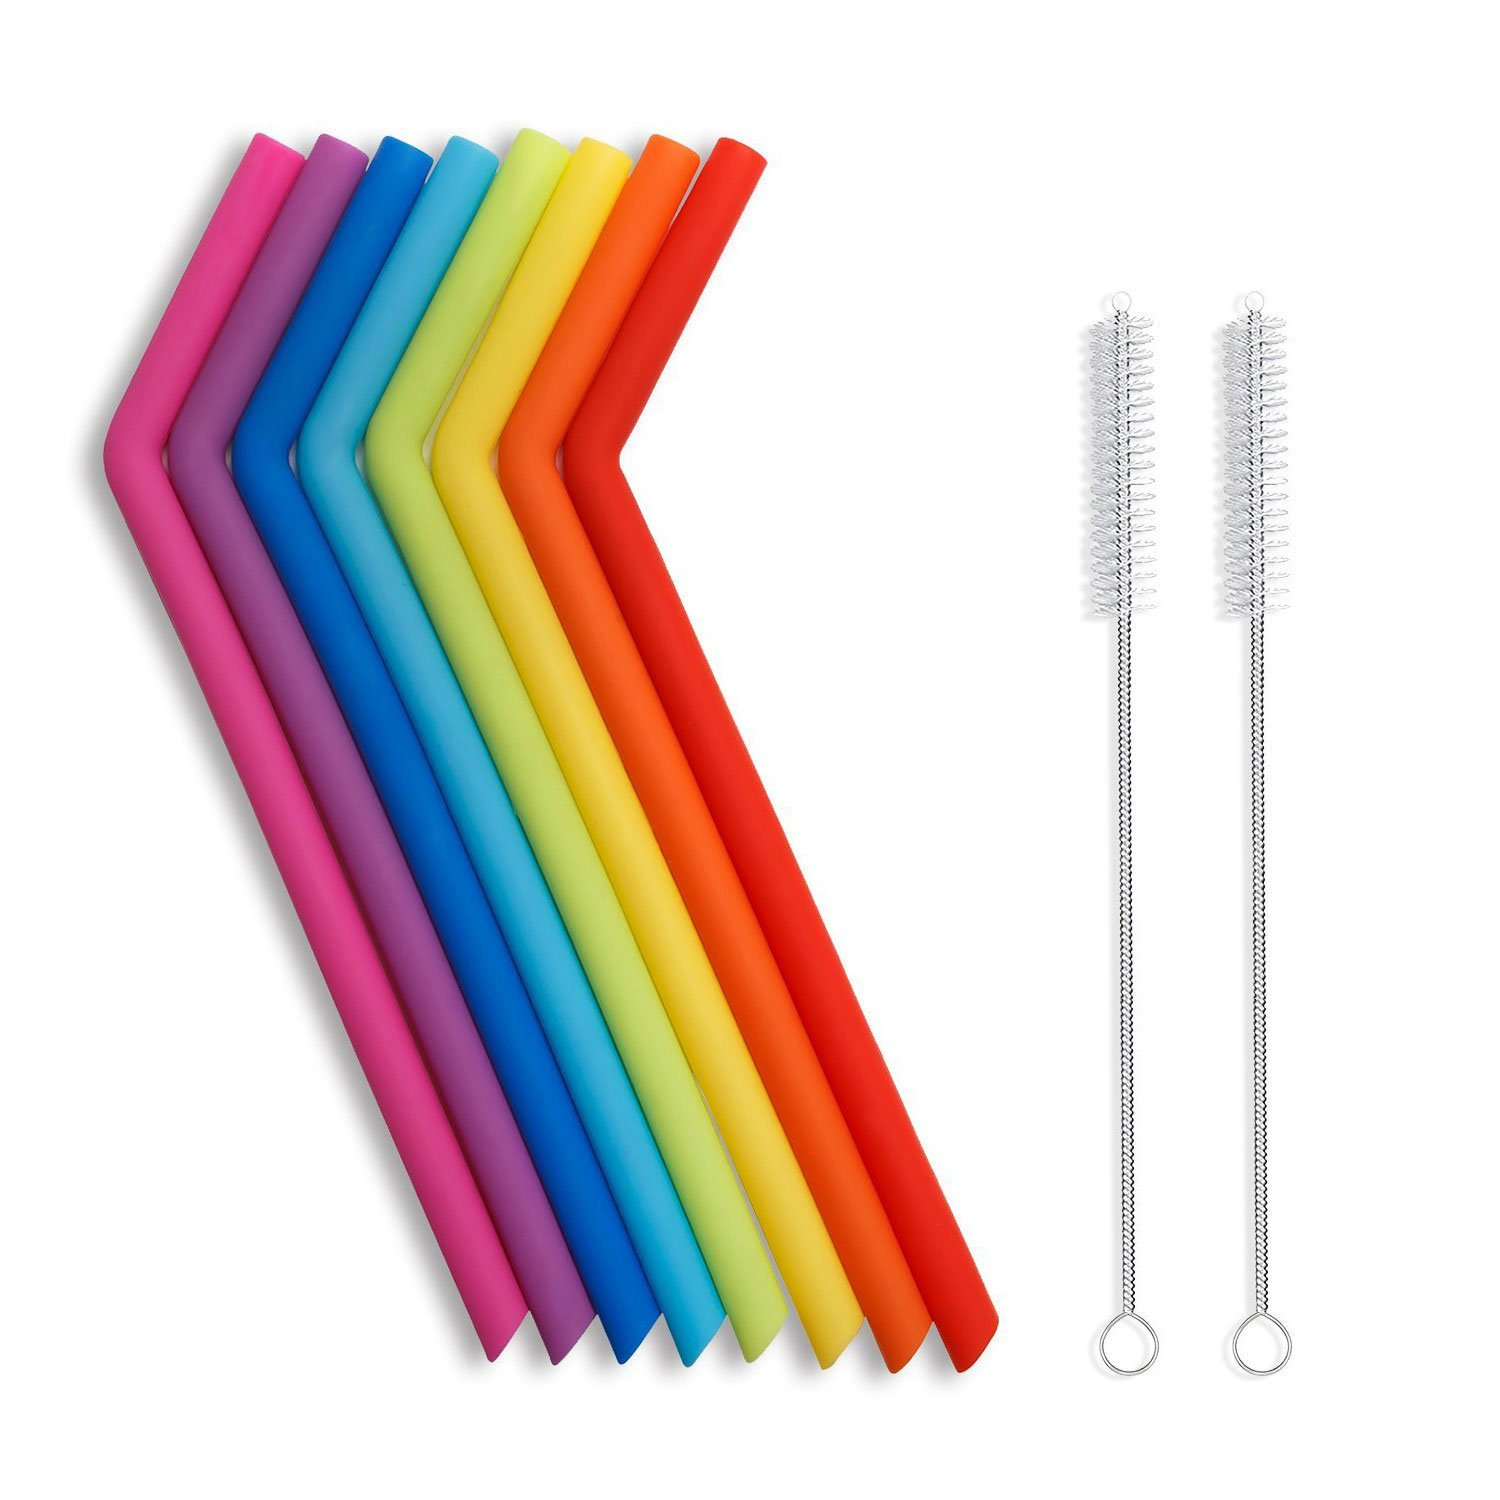 Hiware Reusable Silicone Drinking Straws, Extra Long Flexible Straws with Cleaning Brushes for 30 oz Tumblers RTIC/Yeti - 10 Pieces - Bpa-Free - No Rubber Tast